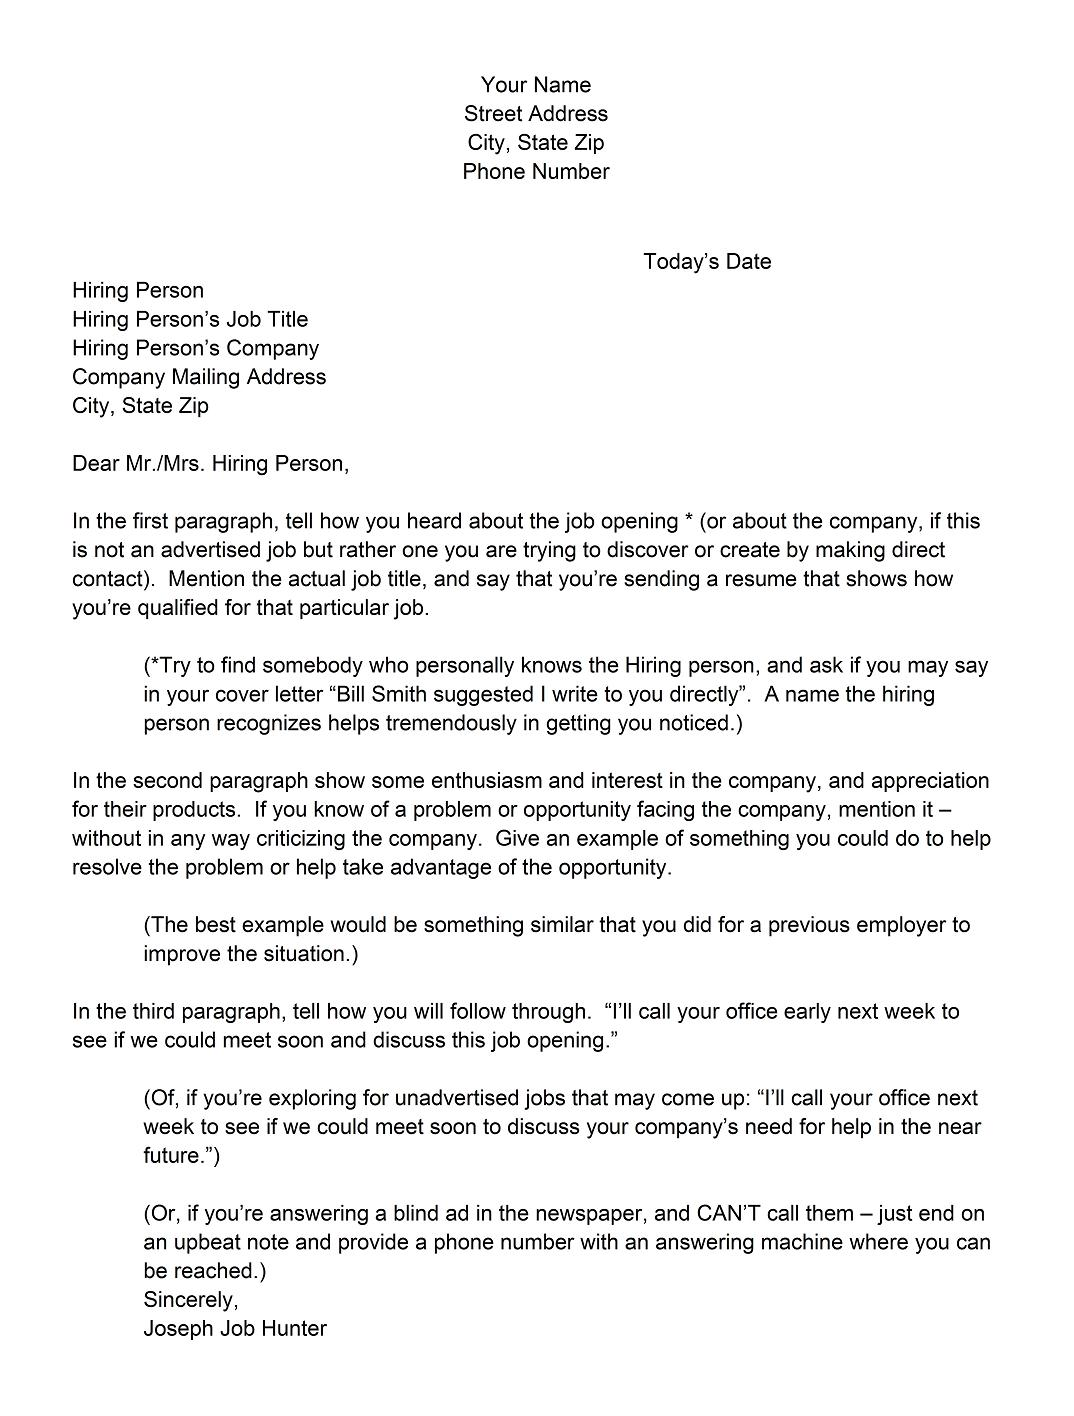 Example of really good cover letters for Cover letter when you know the hiring manager